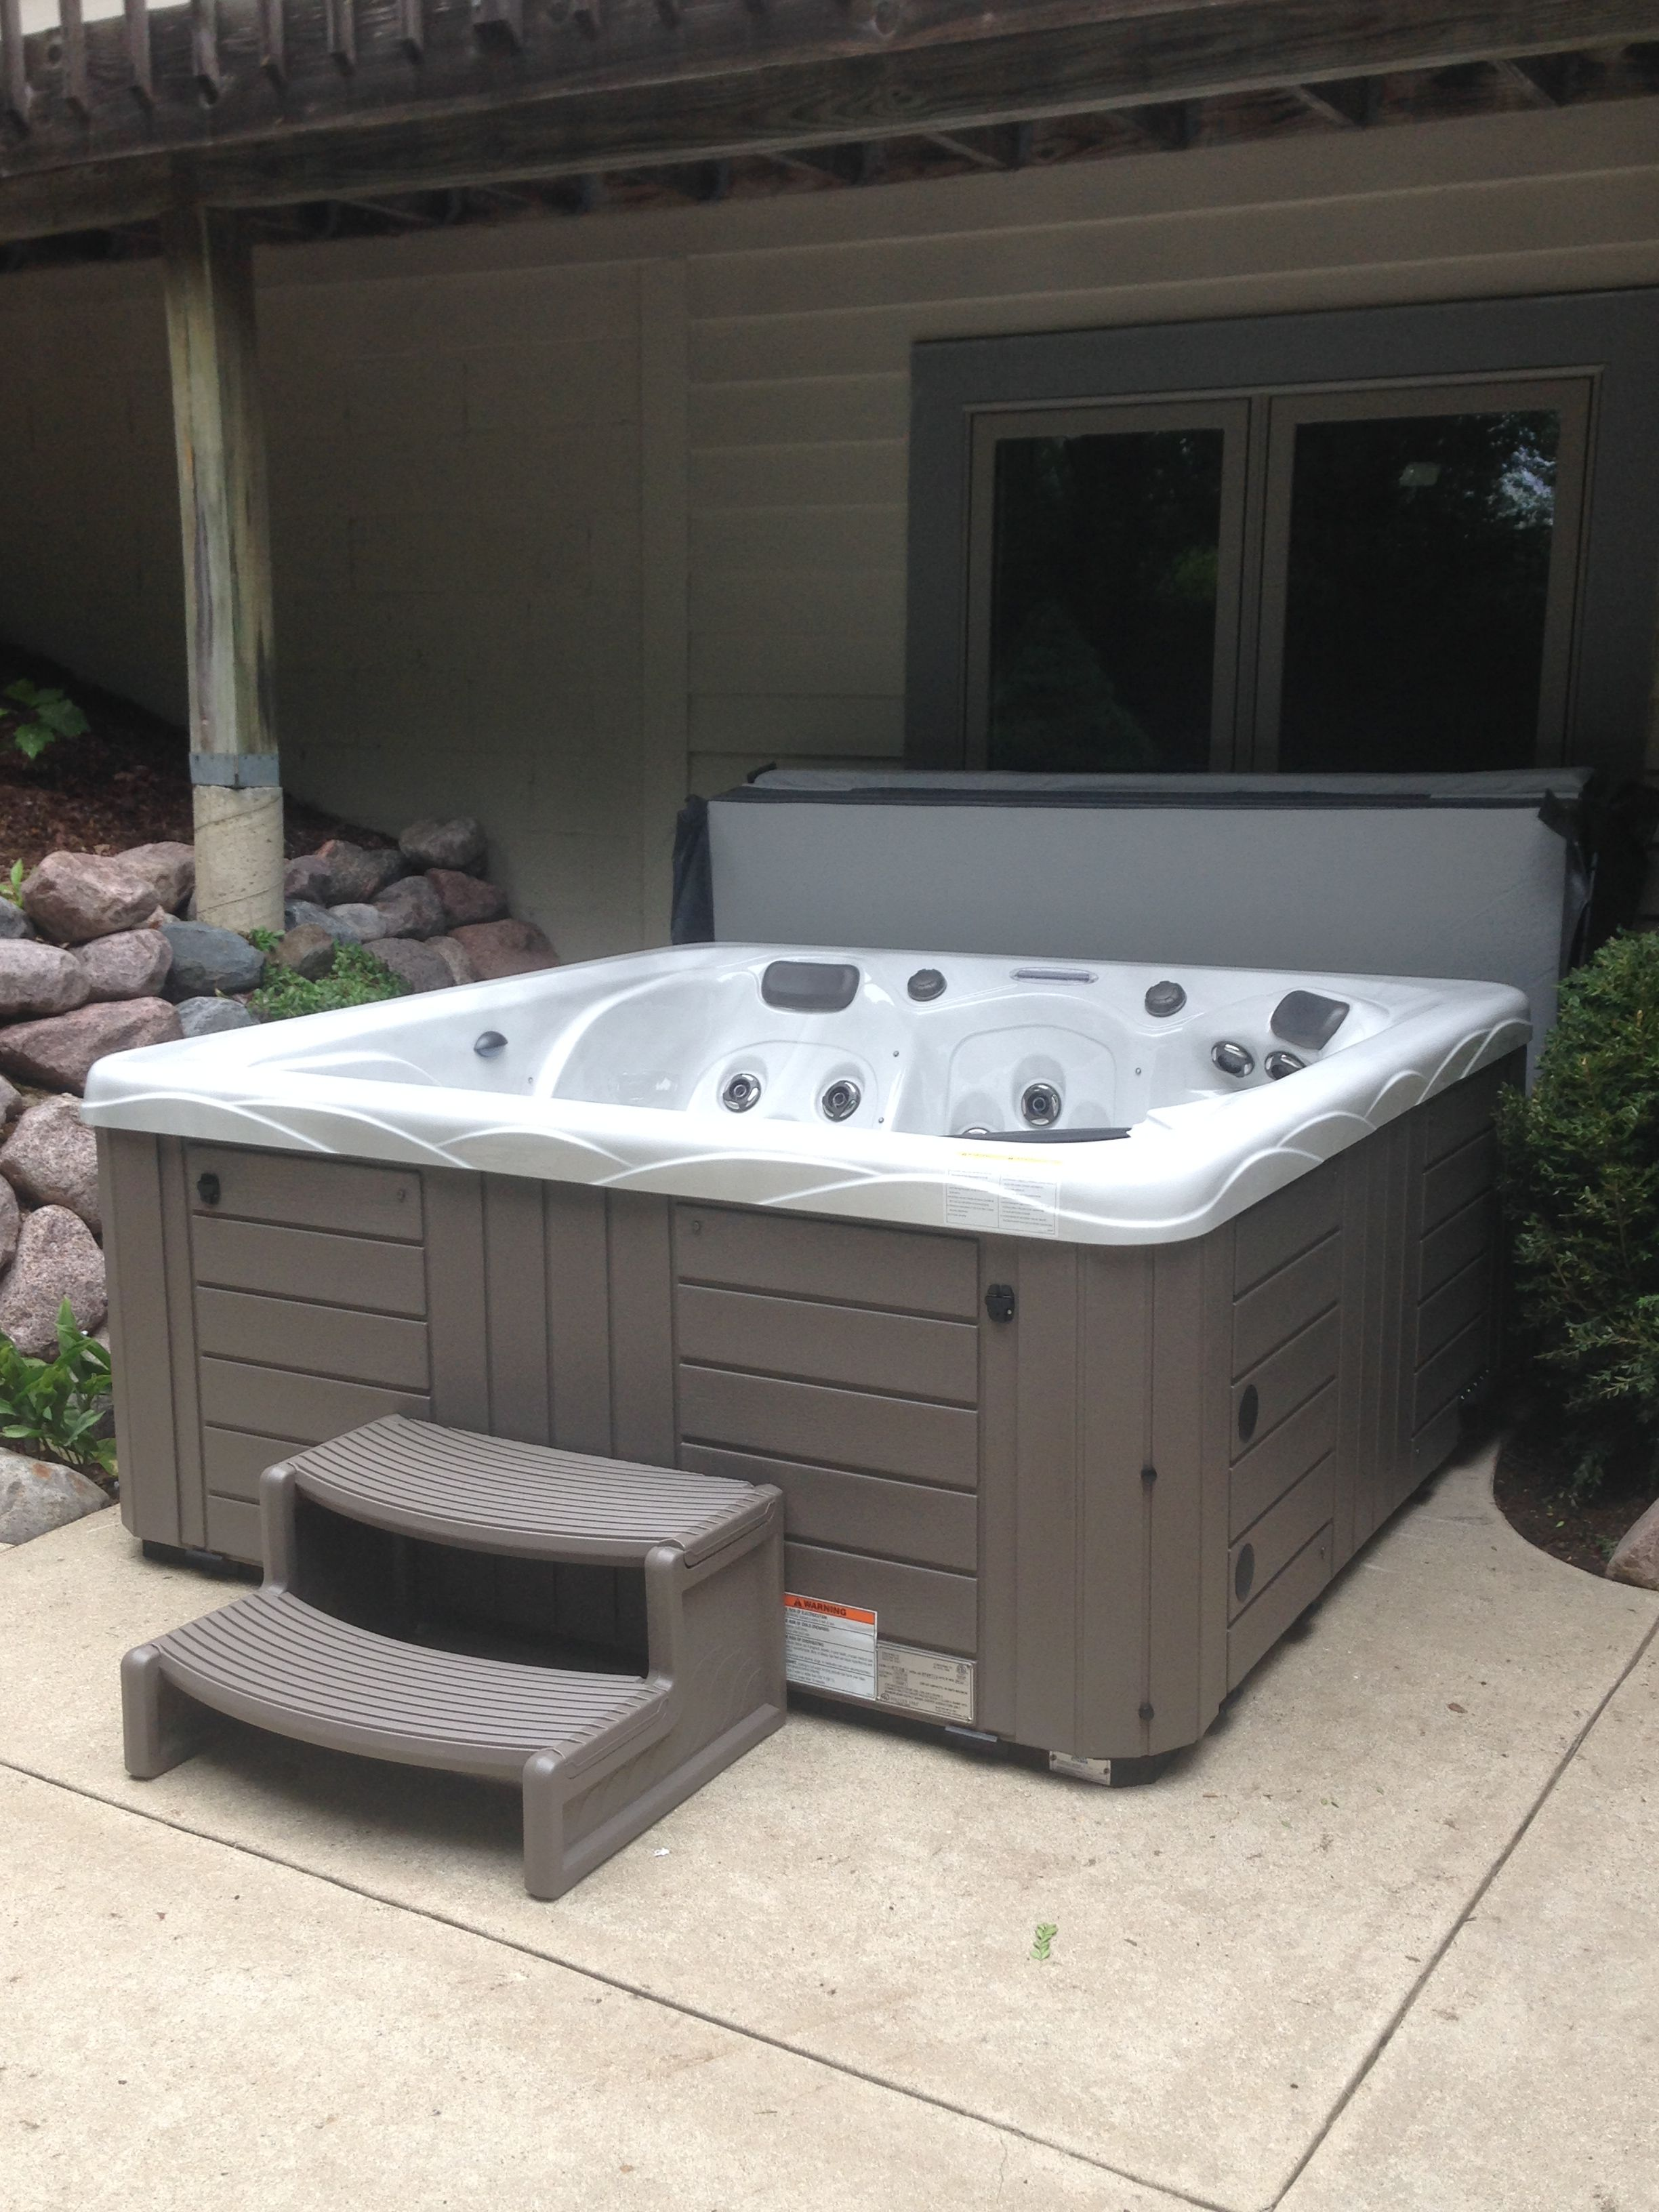 Here is a Master Spas Twilight series installed on a concrete slab under  the deck.